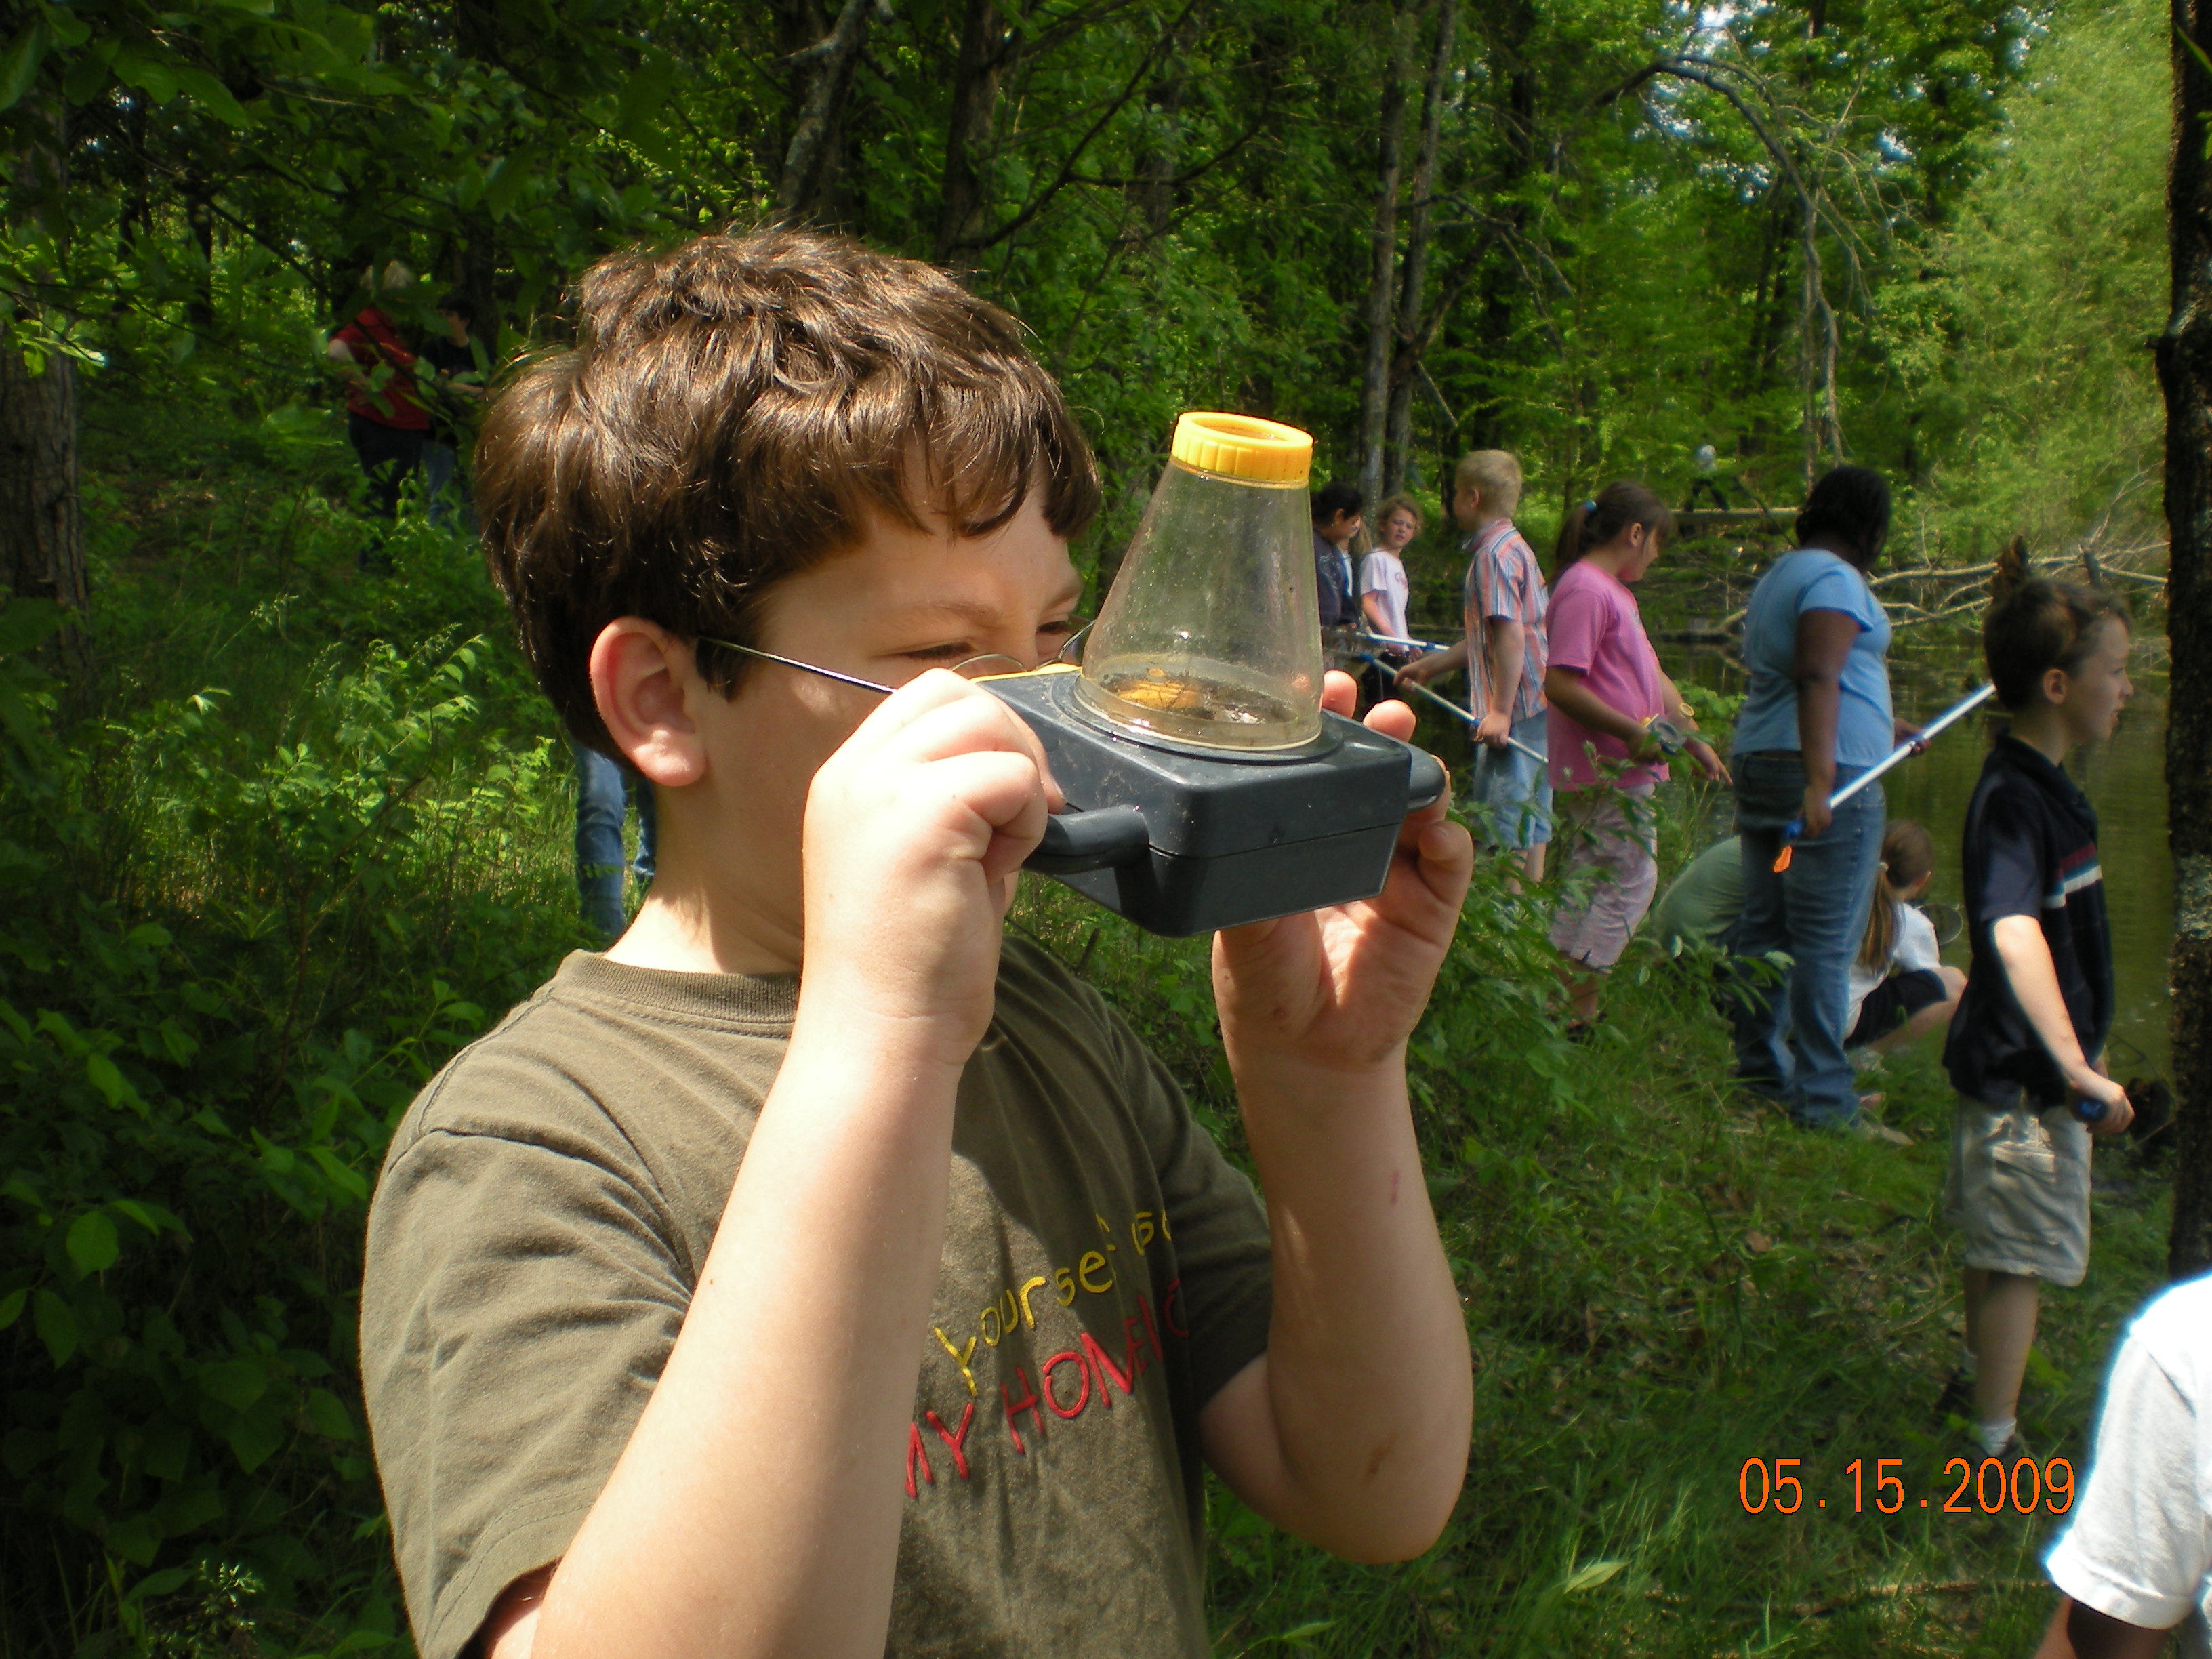 Hawthorne Elementary 3rd Grade student using an observation container to explore the pond